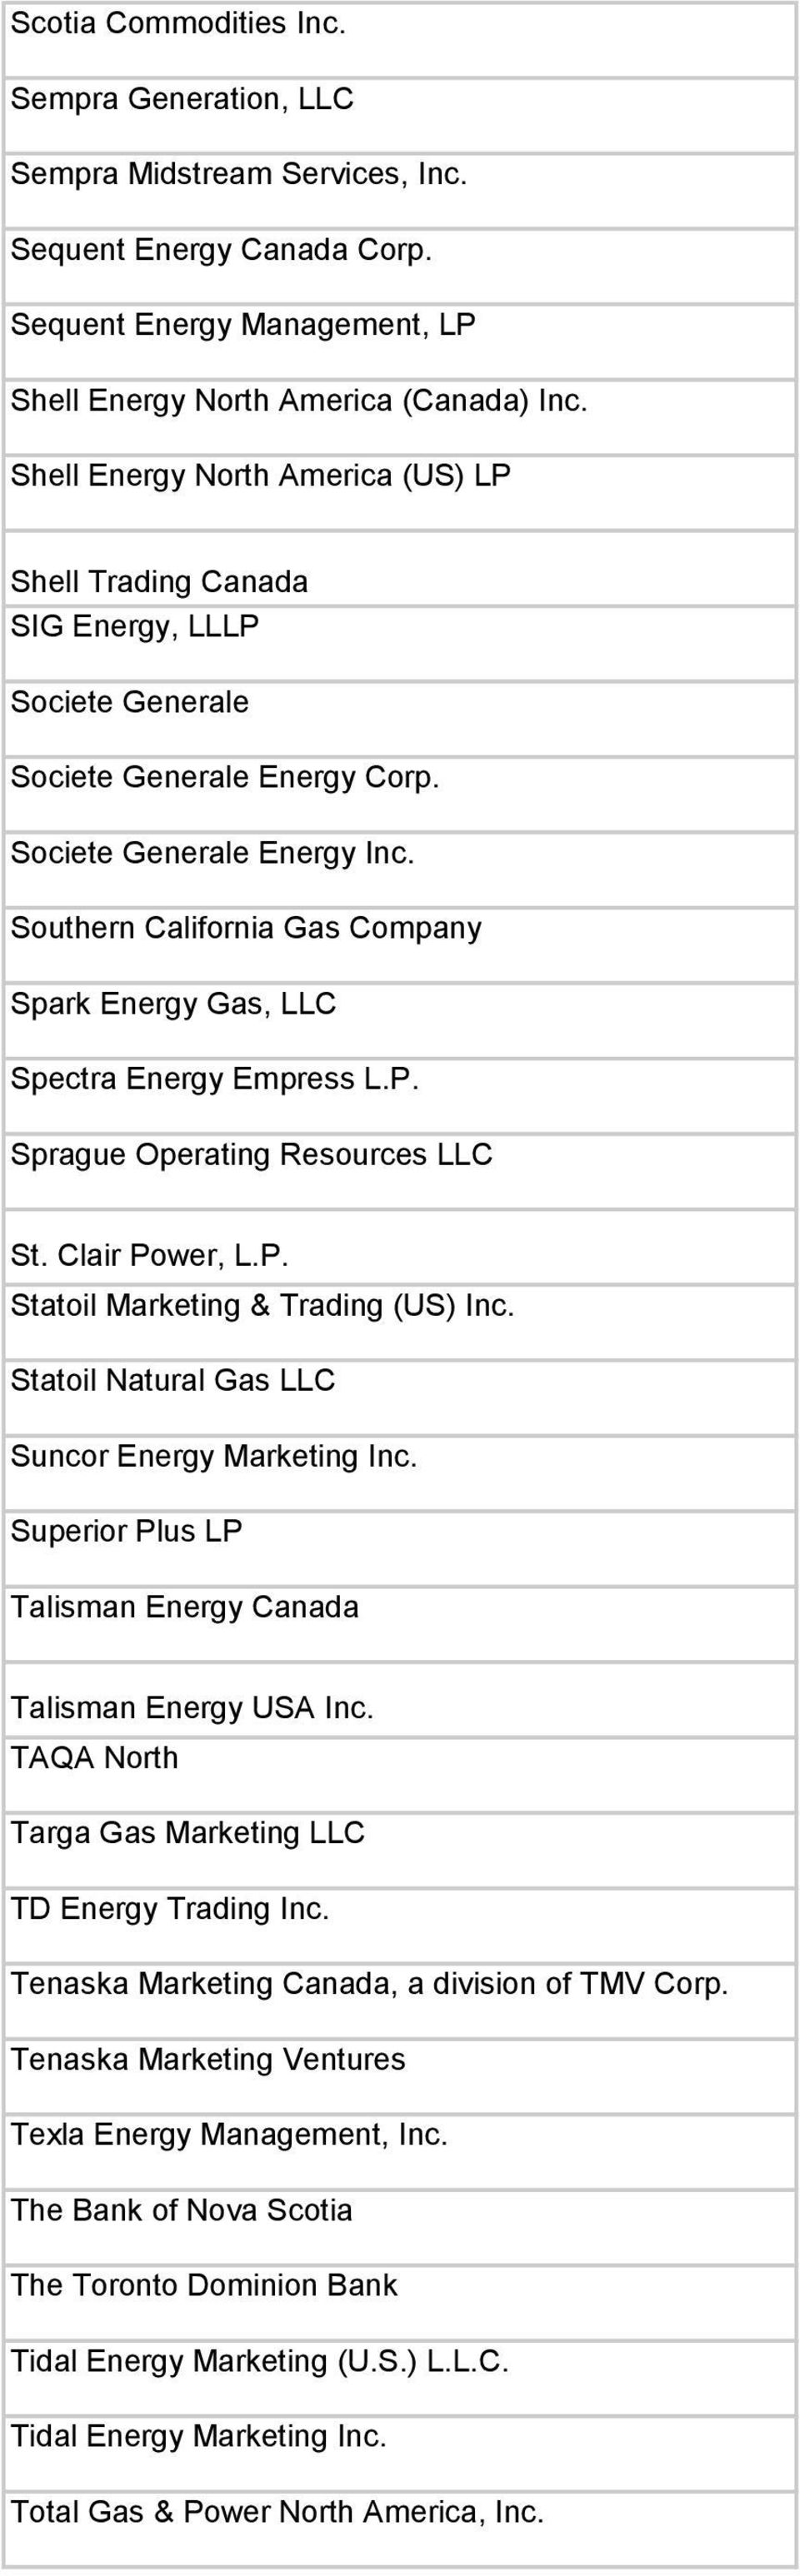 List of Contracting Parties AECO Gas Storage Partnership